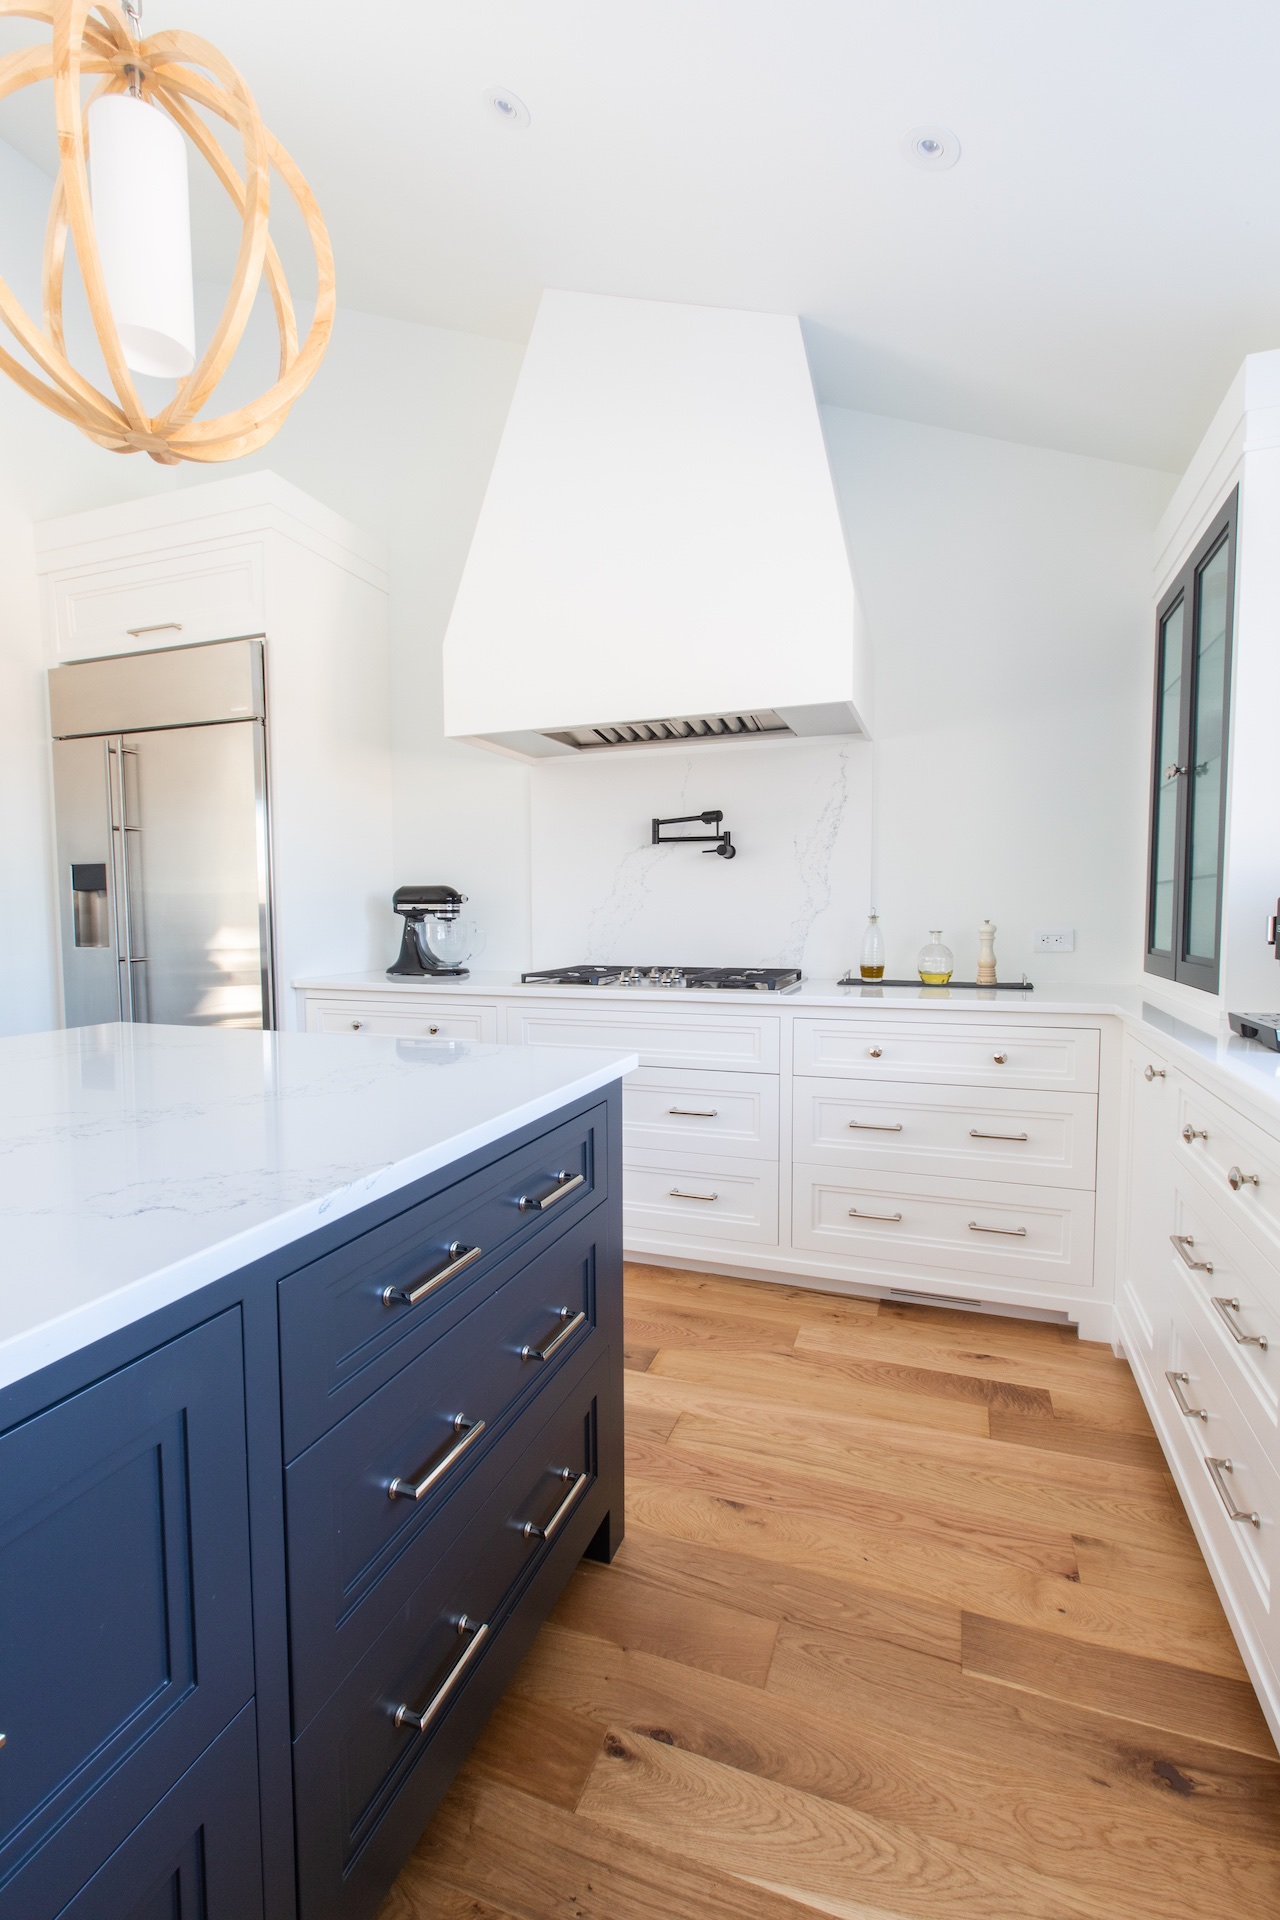 blue island and white kitchen with stove